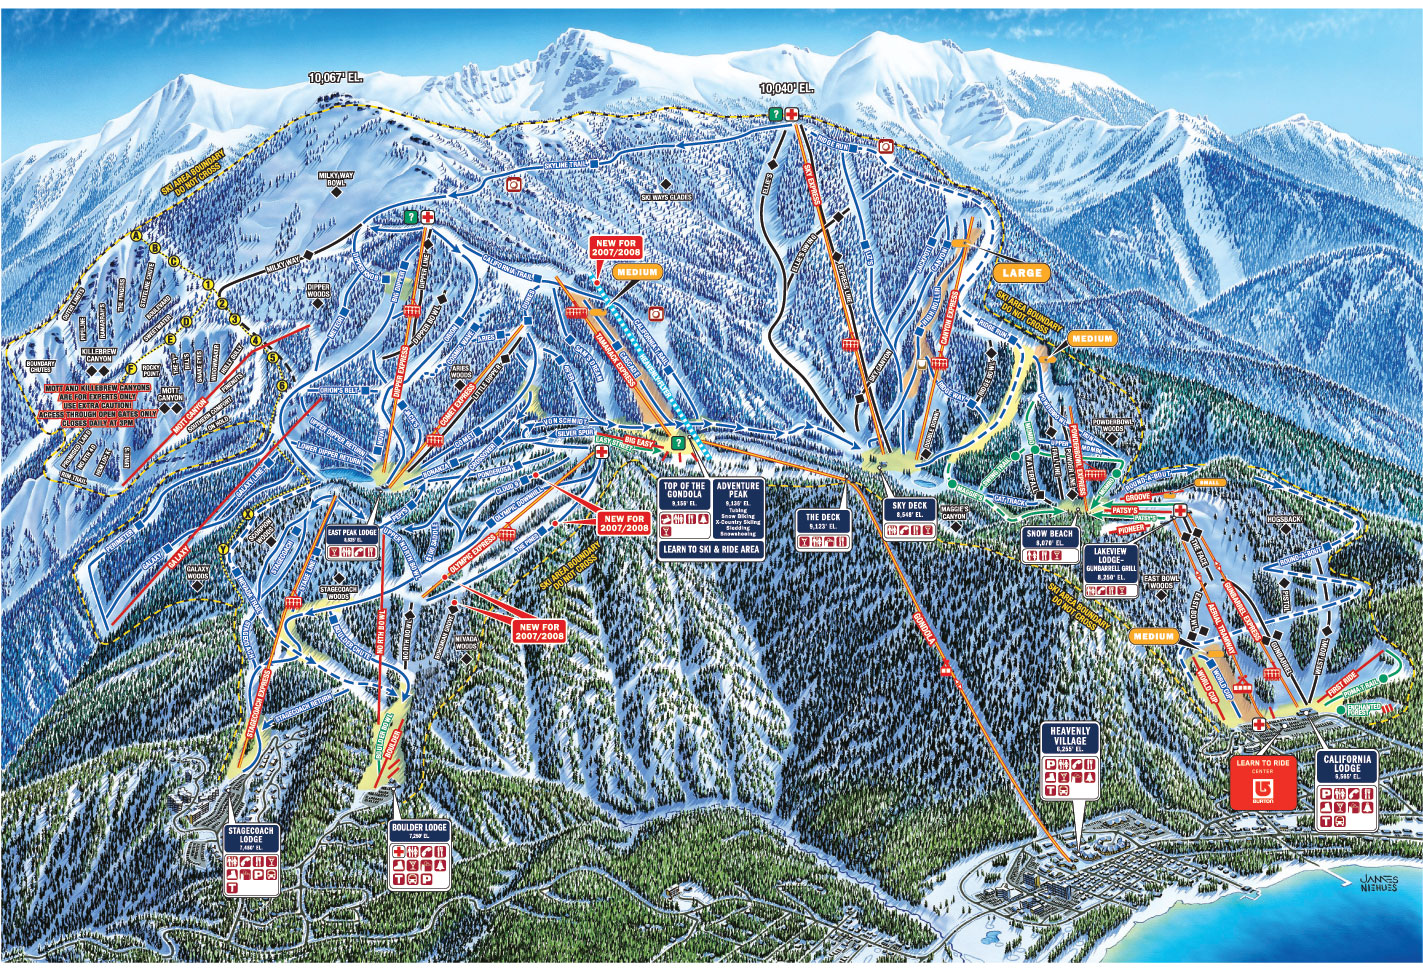 squaw valley trail map with Piste Map Heavenly Ski Maps on Piste Map Heavenly Ski Maps together with Index furthermore Trail Map moreover Jobs At Tyrol Basin likewise Squaw Valley.